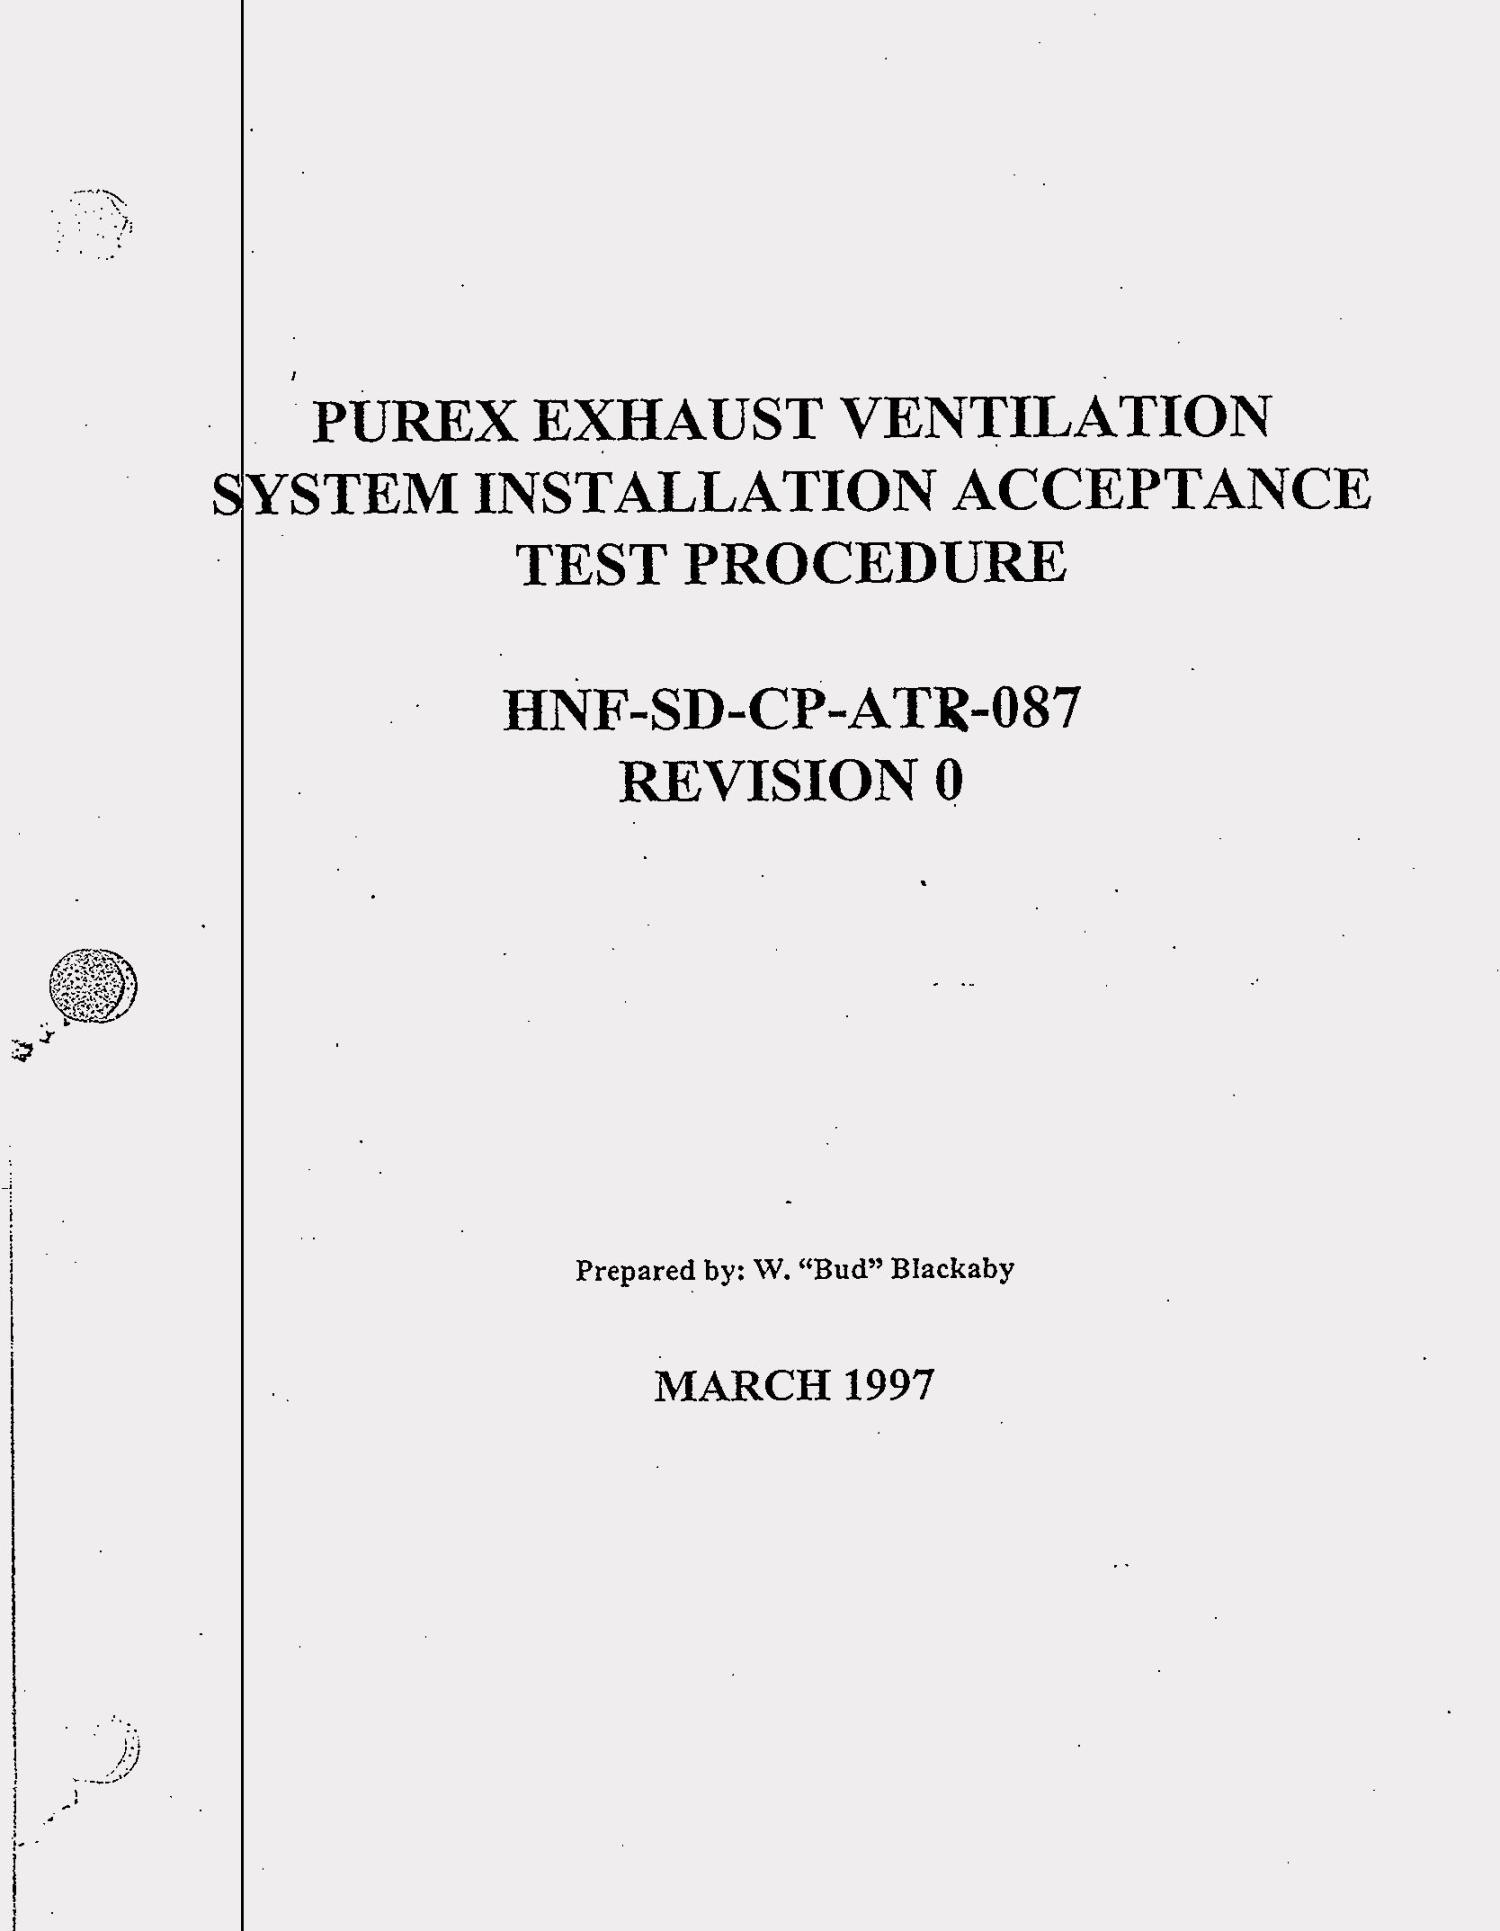 PUREX exhaust ventilation system installation test report                                                                                                      [Sequence #]: 3 of 80